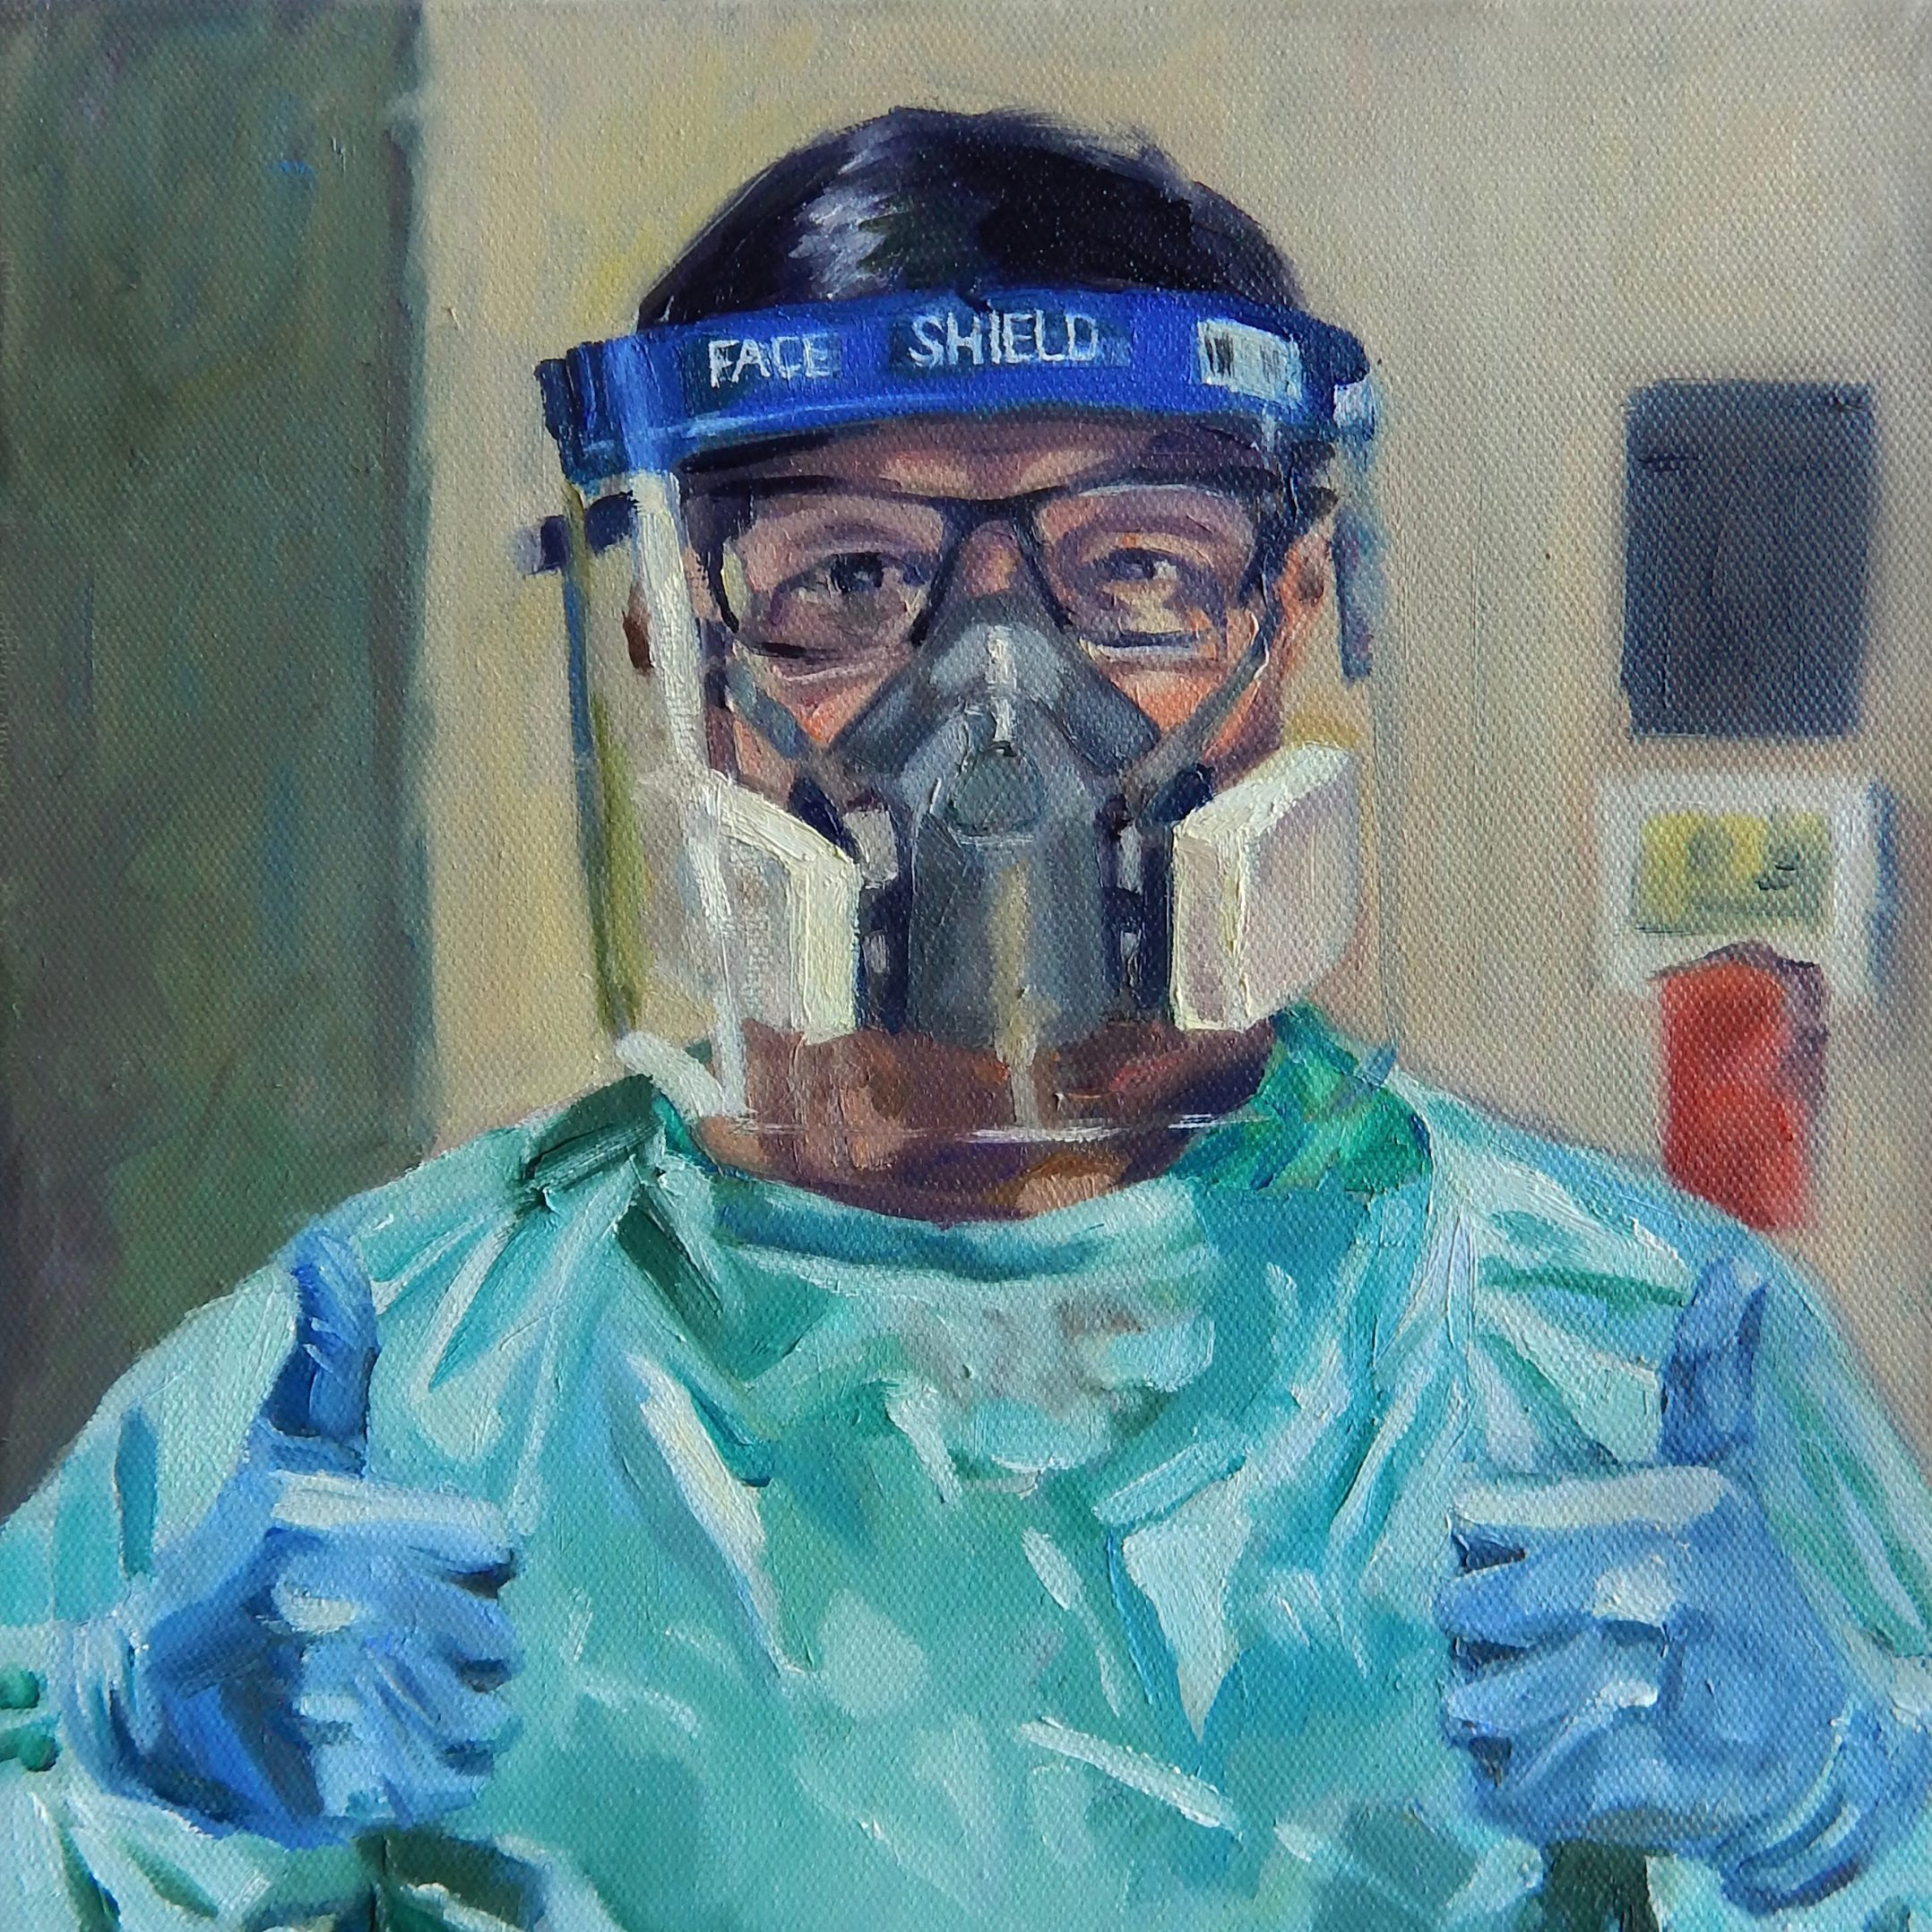 NHS-portrait-for-heroes-male-nurse-in-PPE